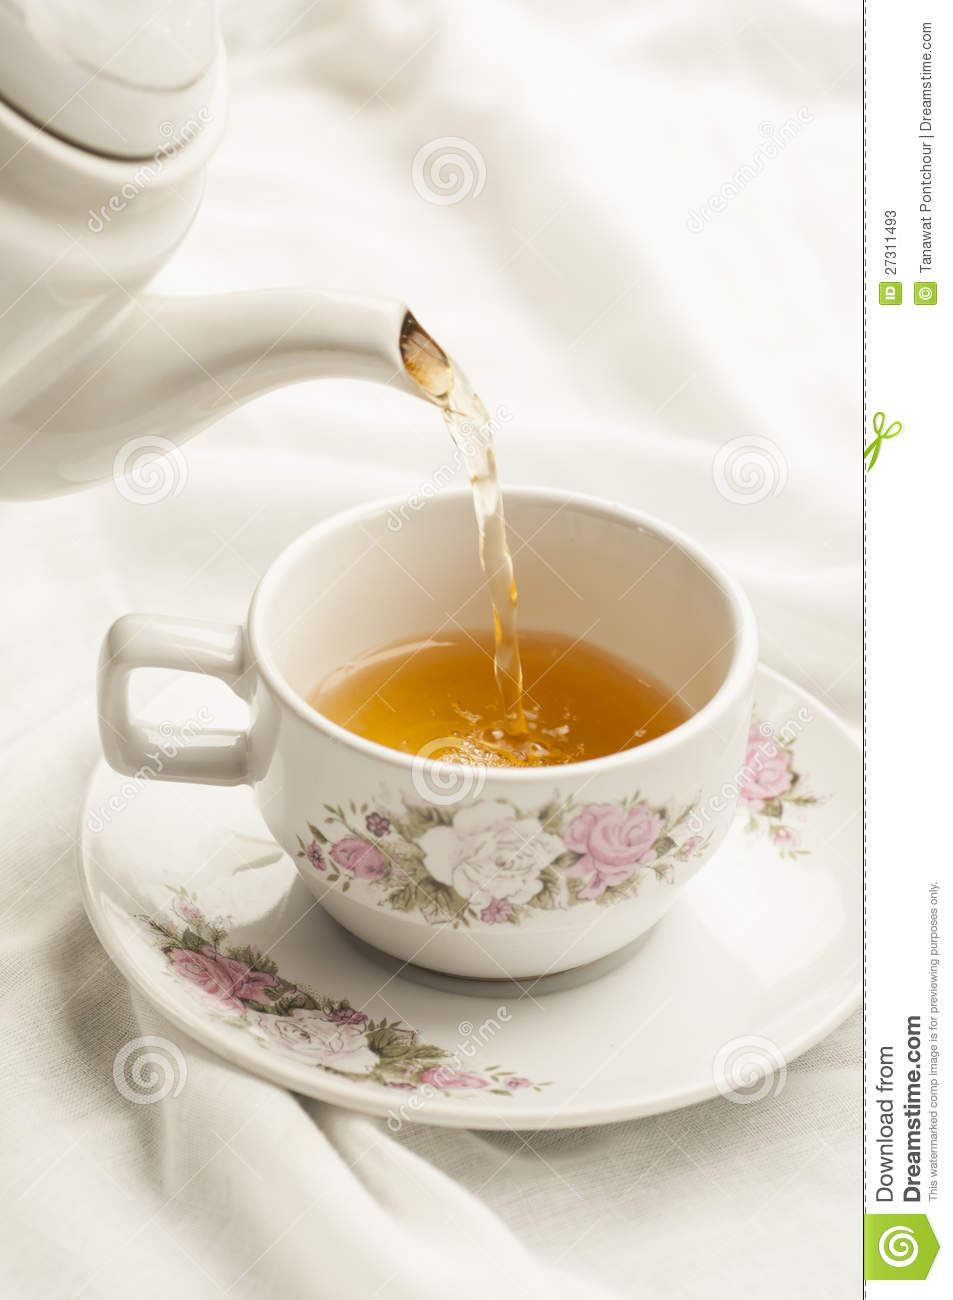 Tea Being Poured Into Tea Cup Stock Photos Image 27311493